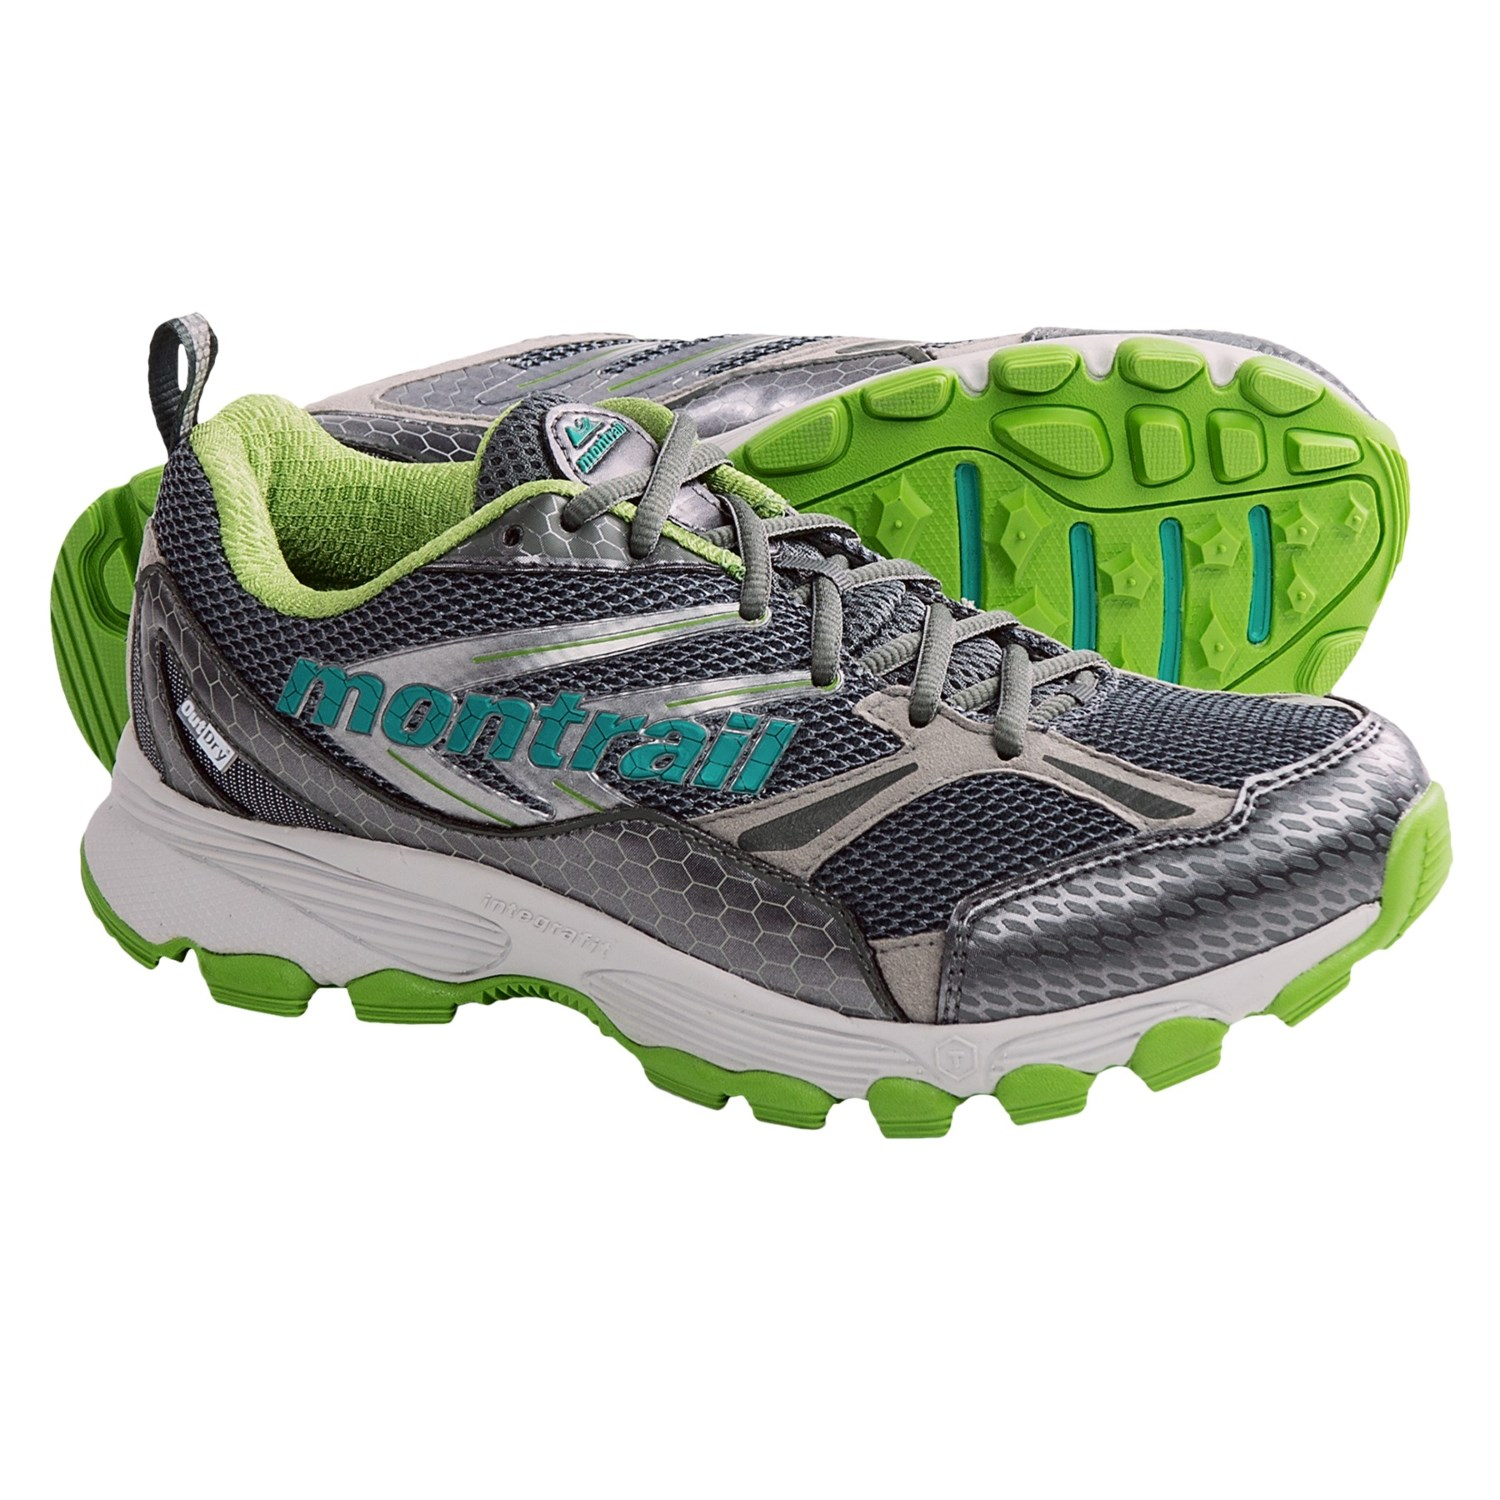 Montrail Badrock Trail Running Shoes Review